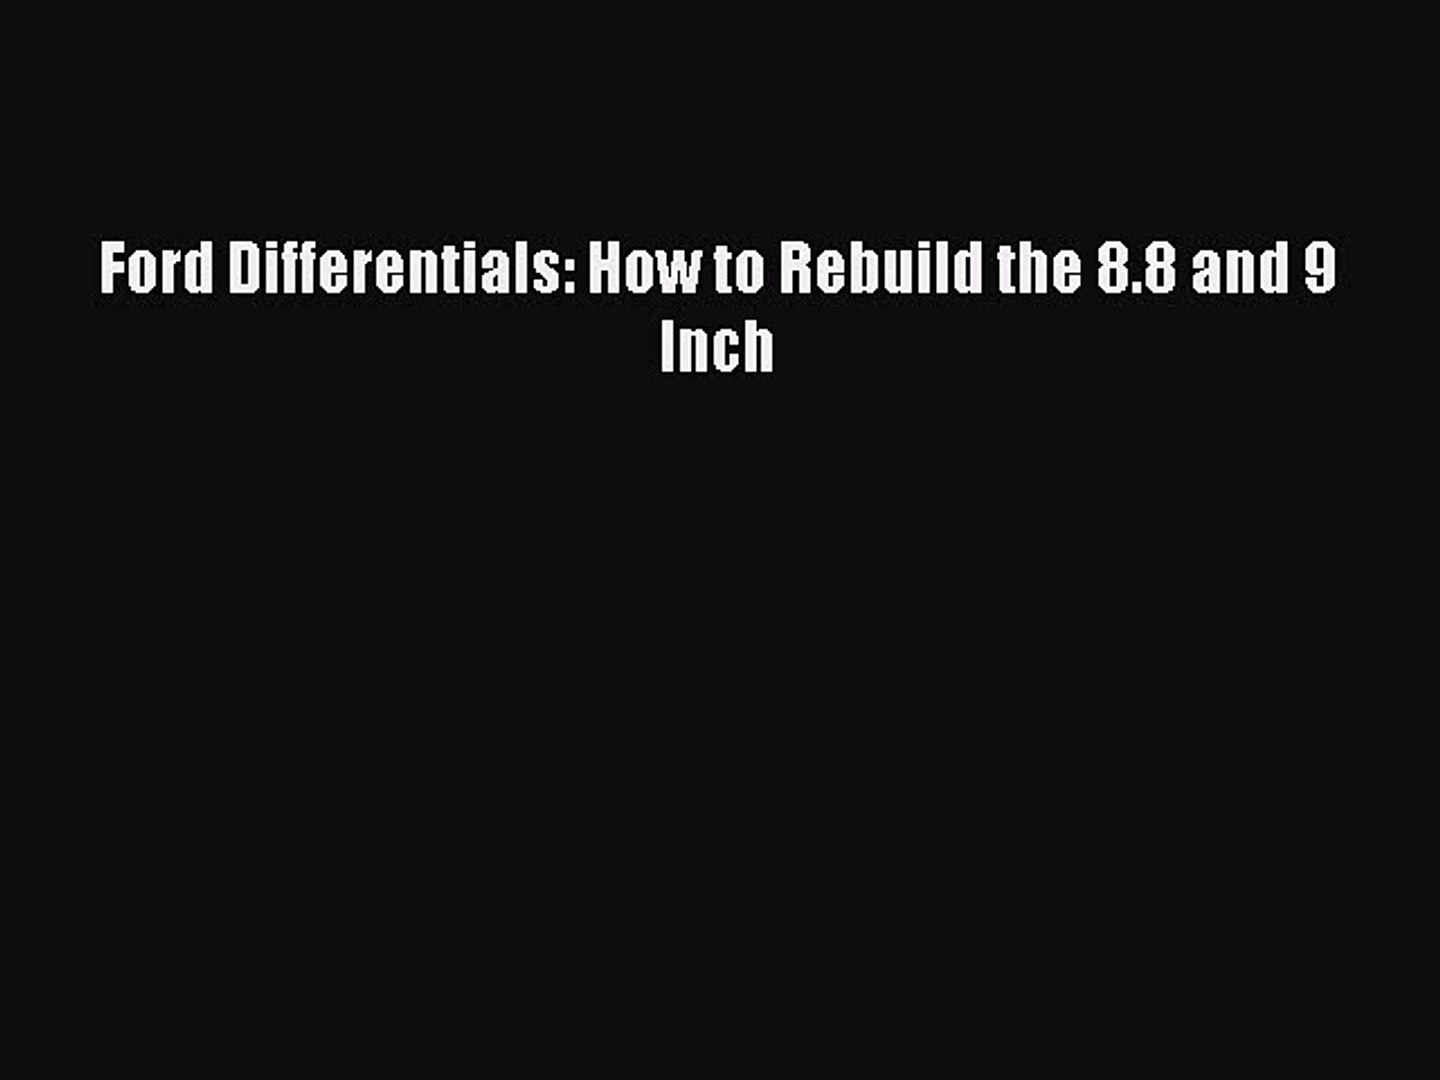 Read Ford Differentials: How to Rebuild the 8 8 and 9 Inch Ebook Free